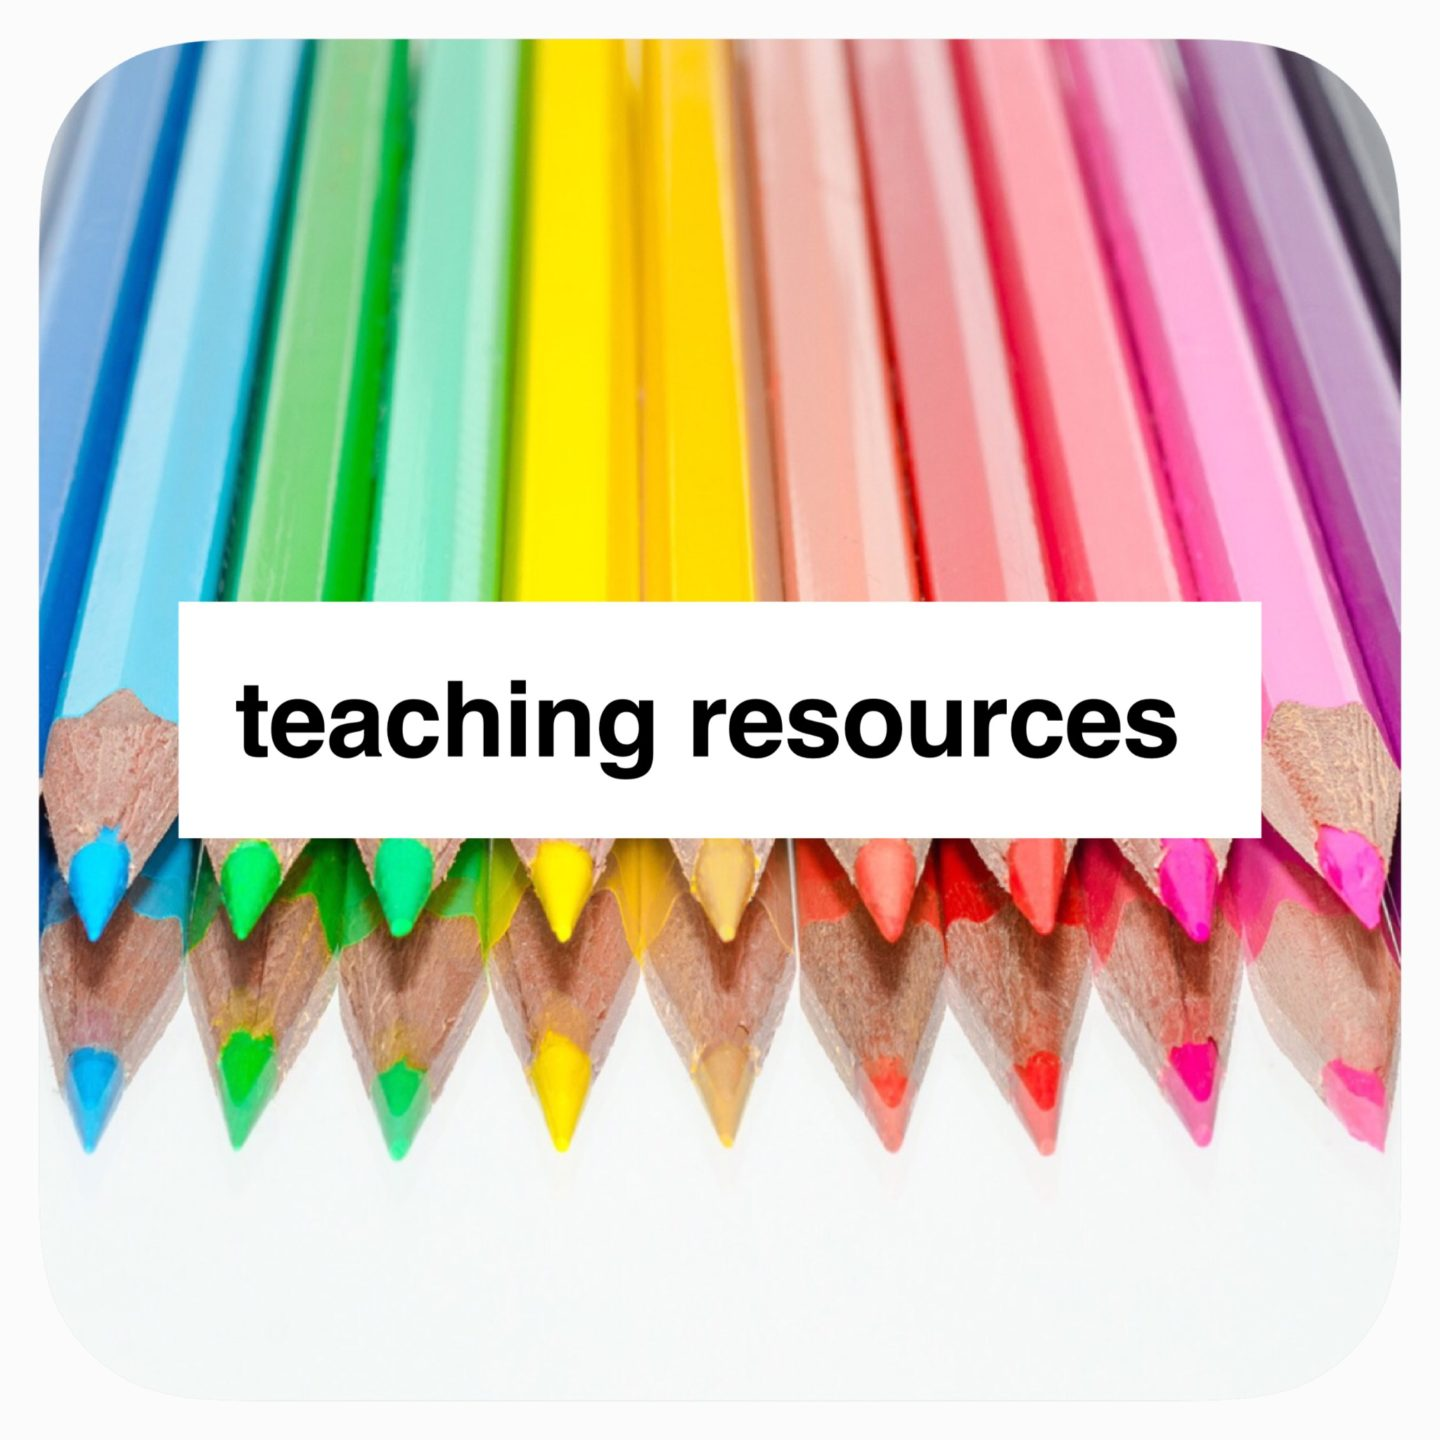 Teaching resources from @how2playtoday